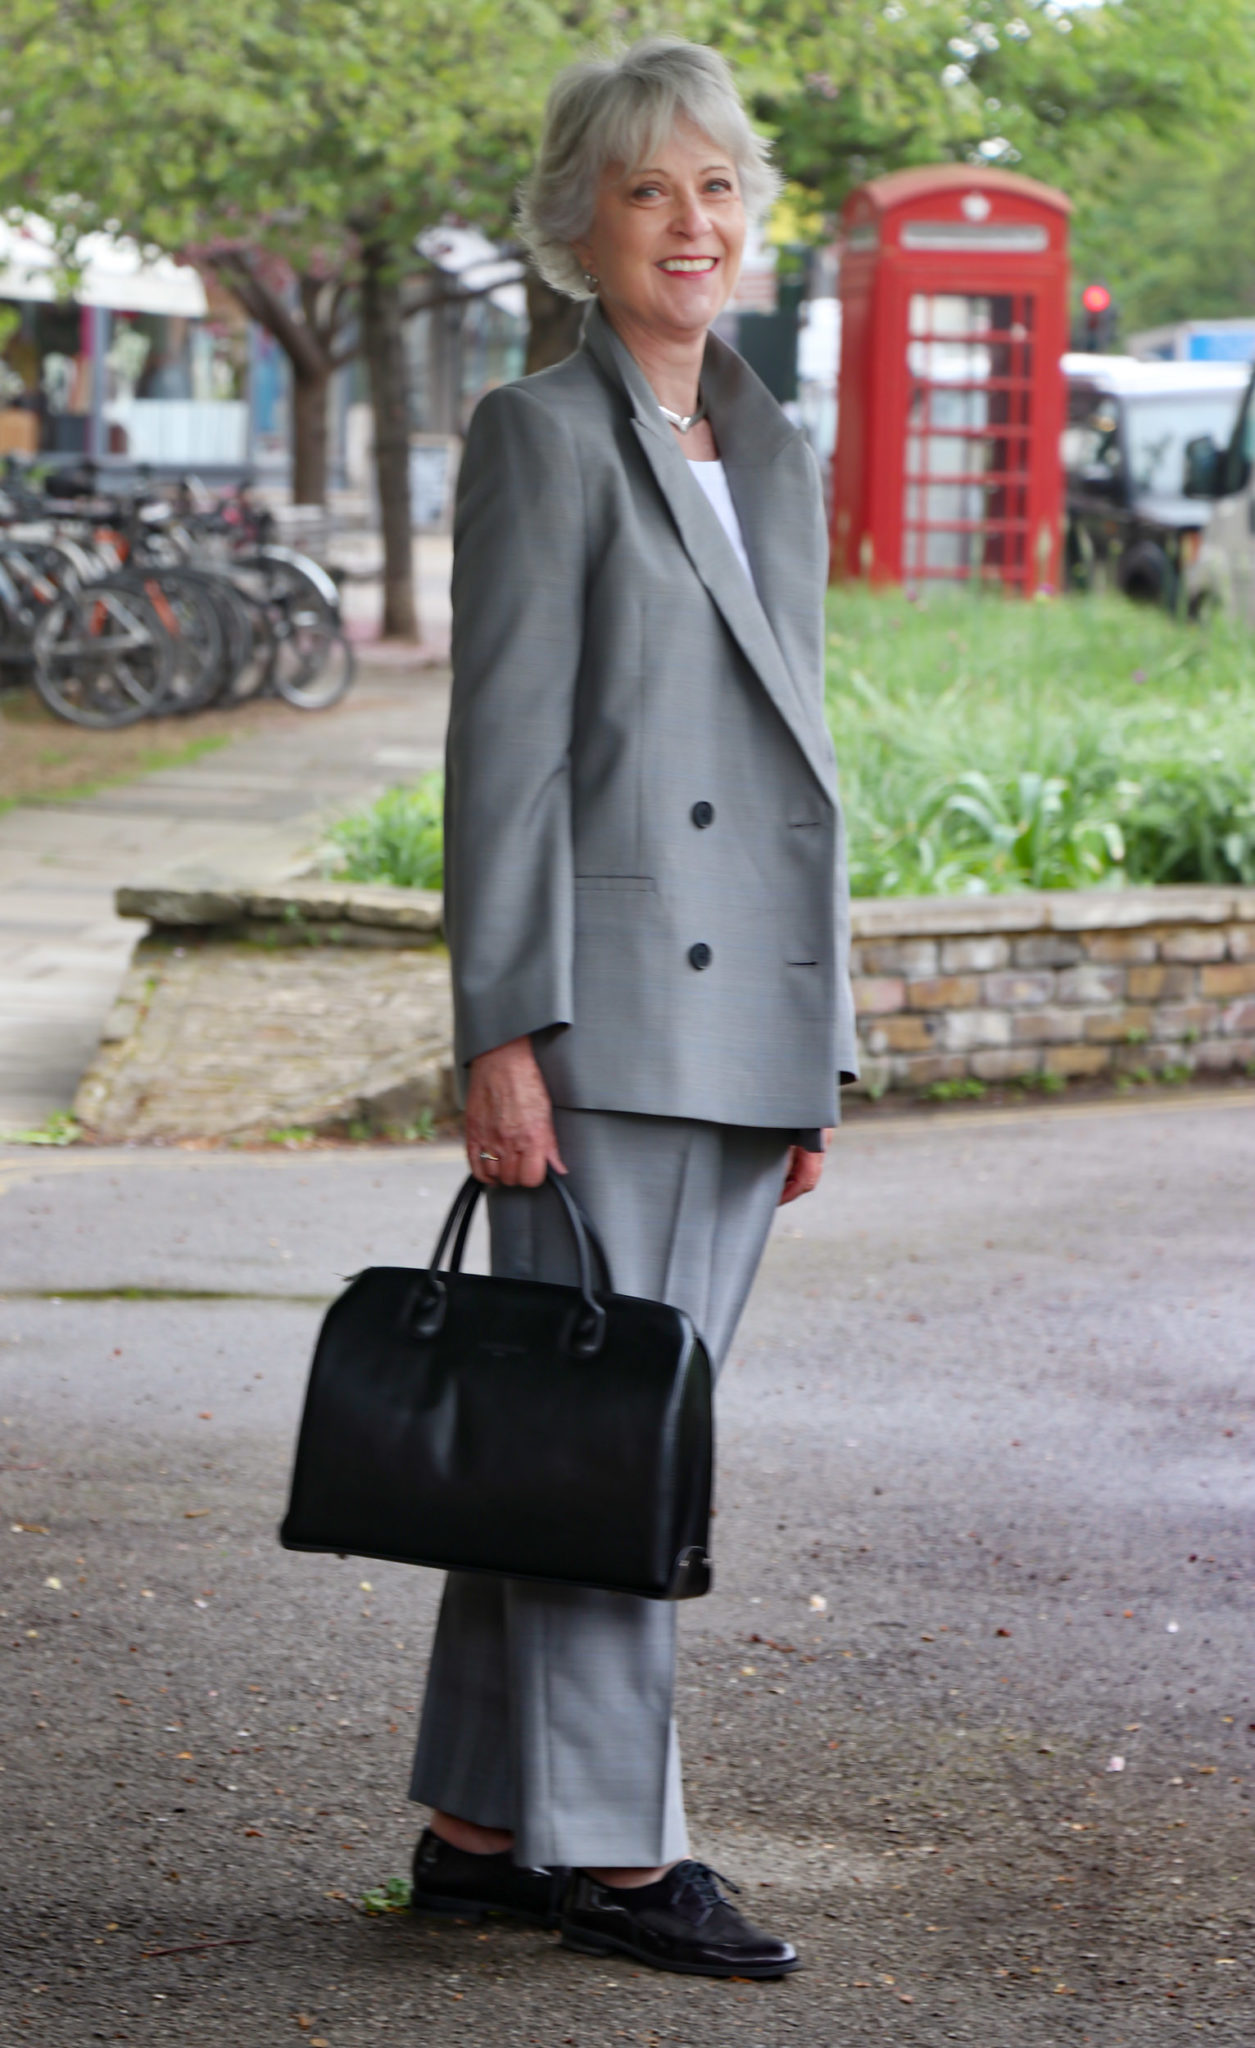 Formal wear - Suited and booted